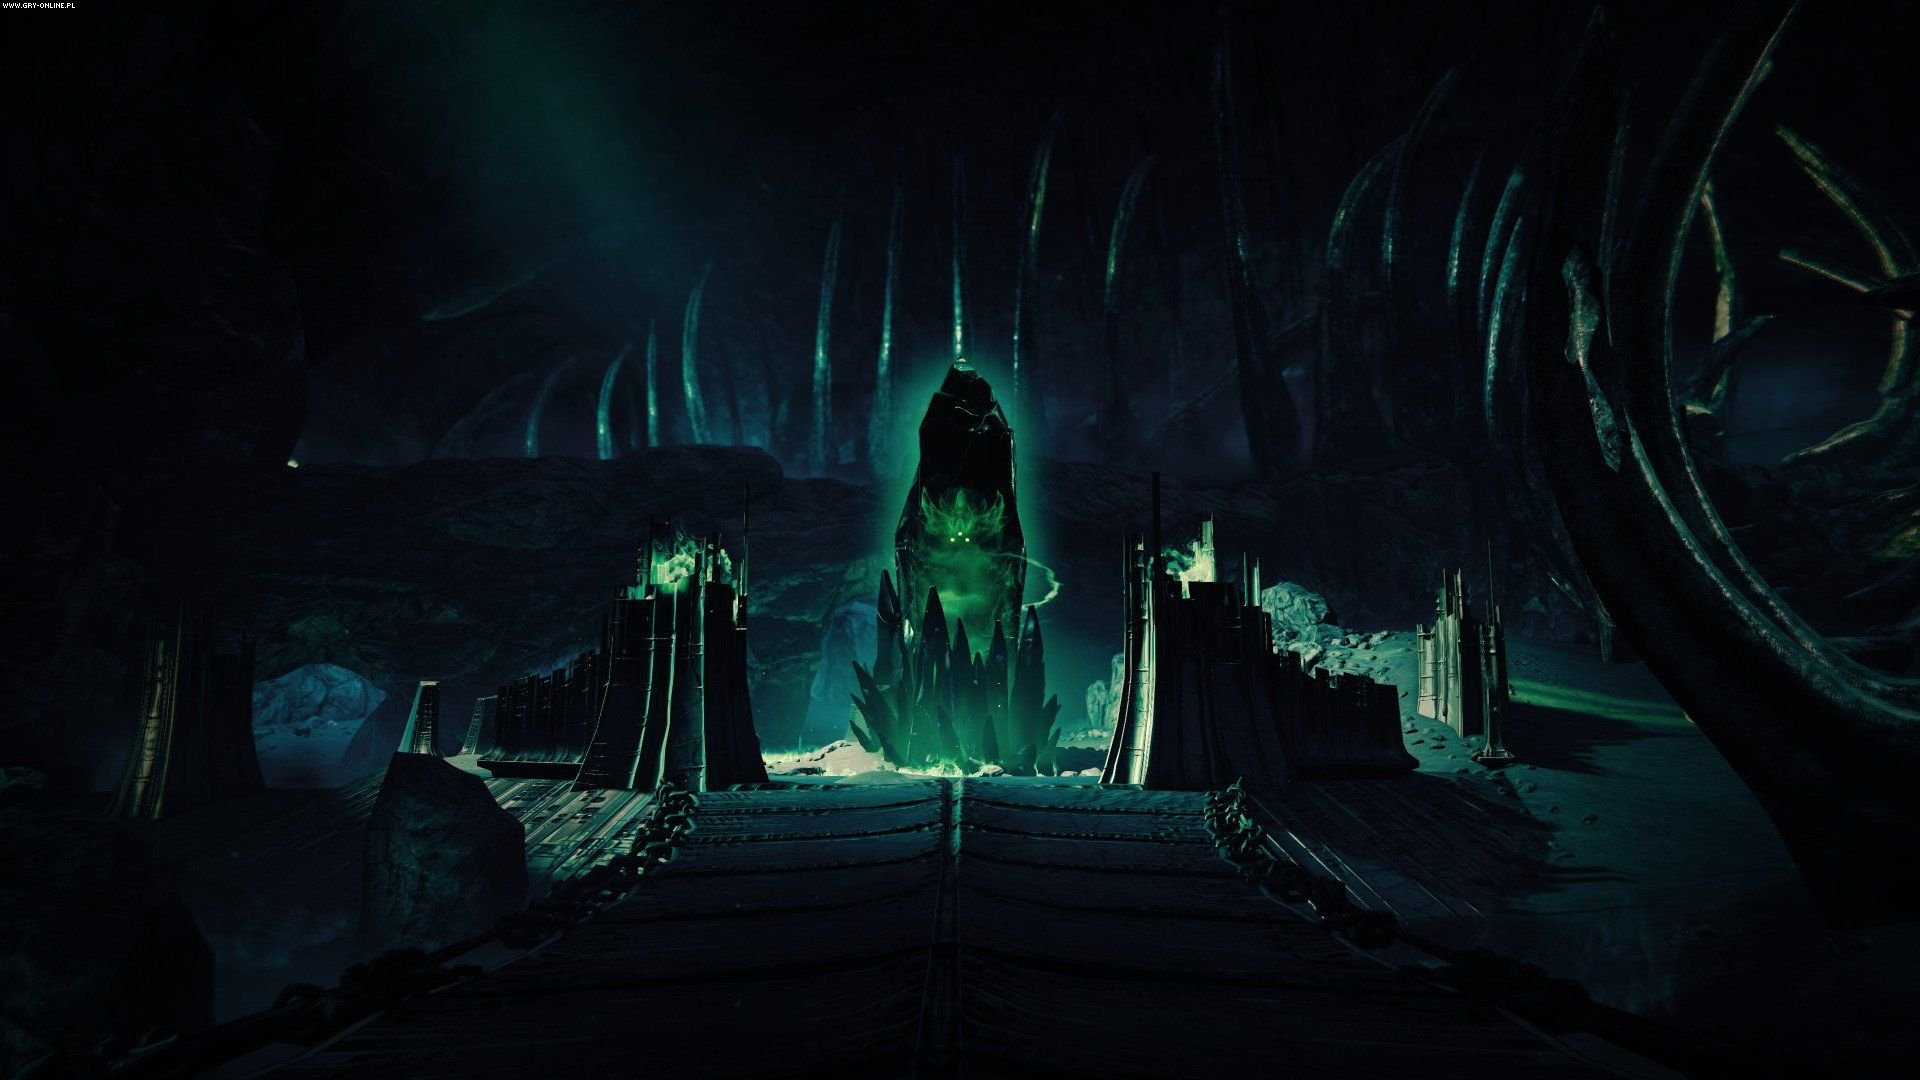 Destiny: The Dark Below PS4, PS3, X360, XONE Gry Screen 7/12, Bungie Software, Activision Blizzard